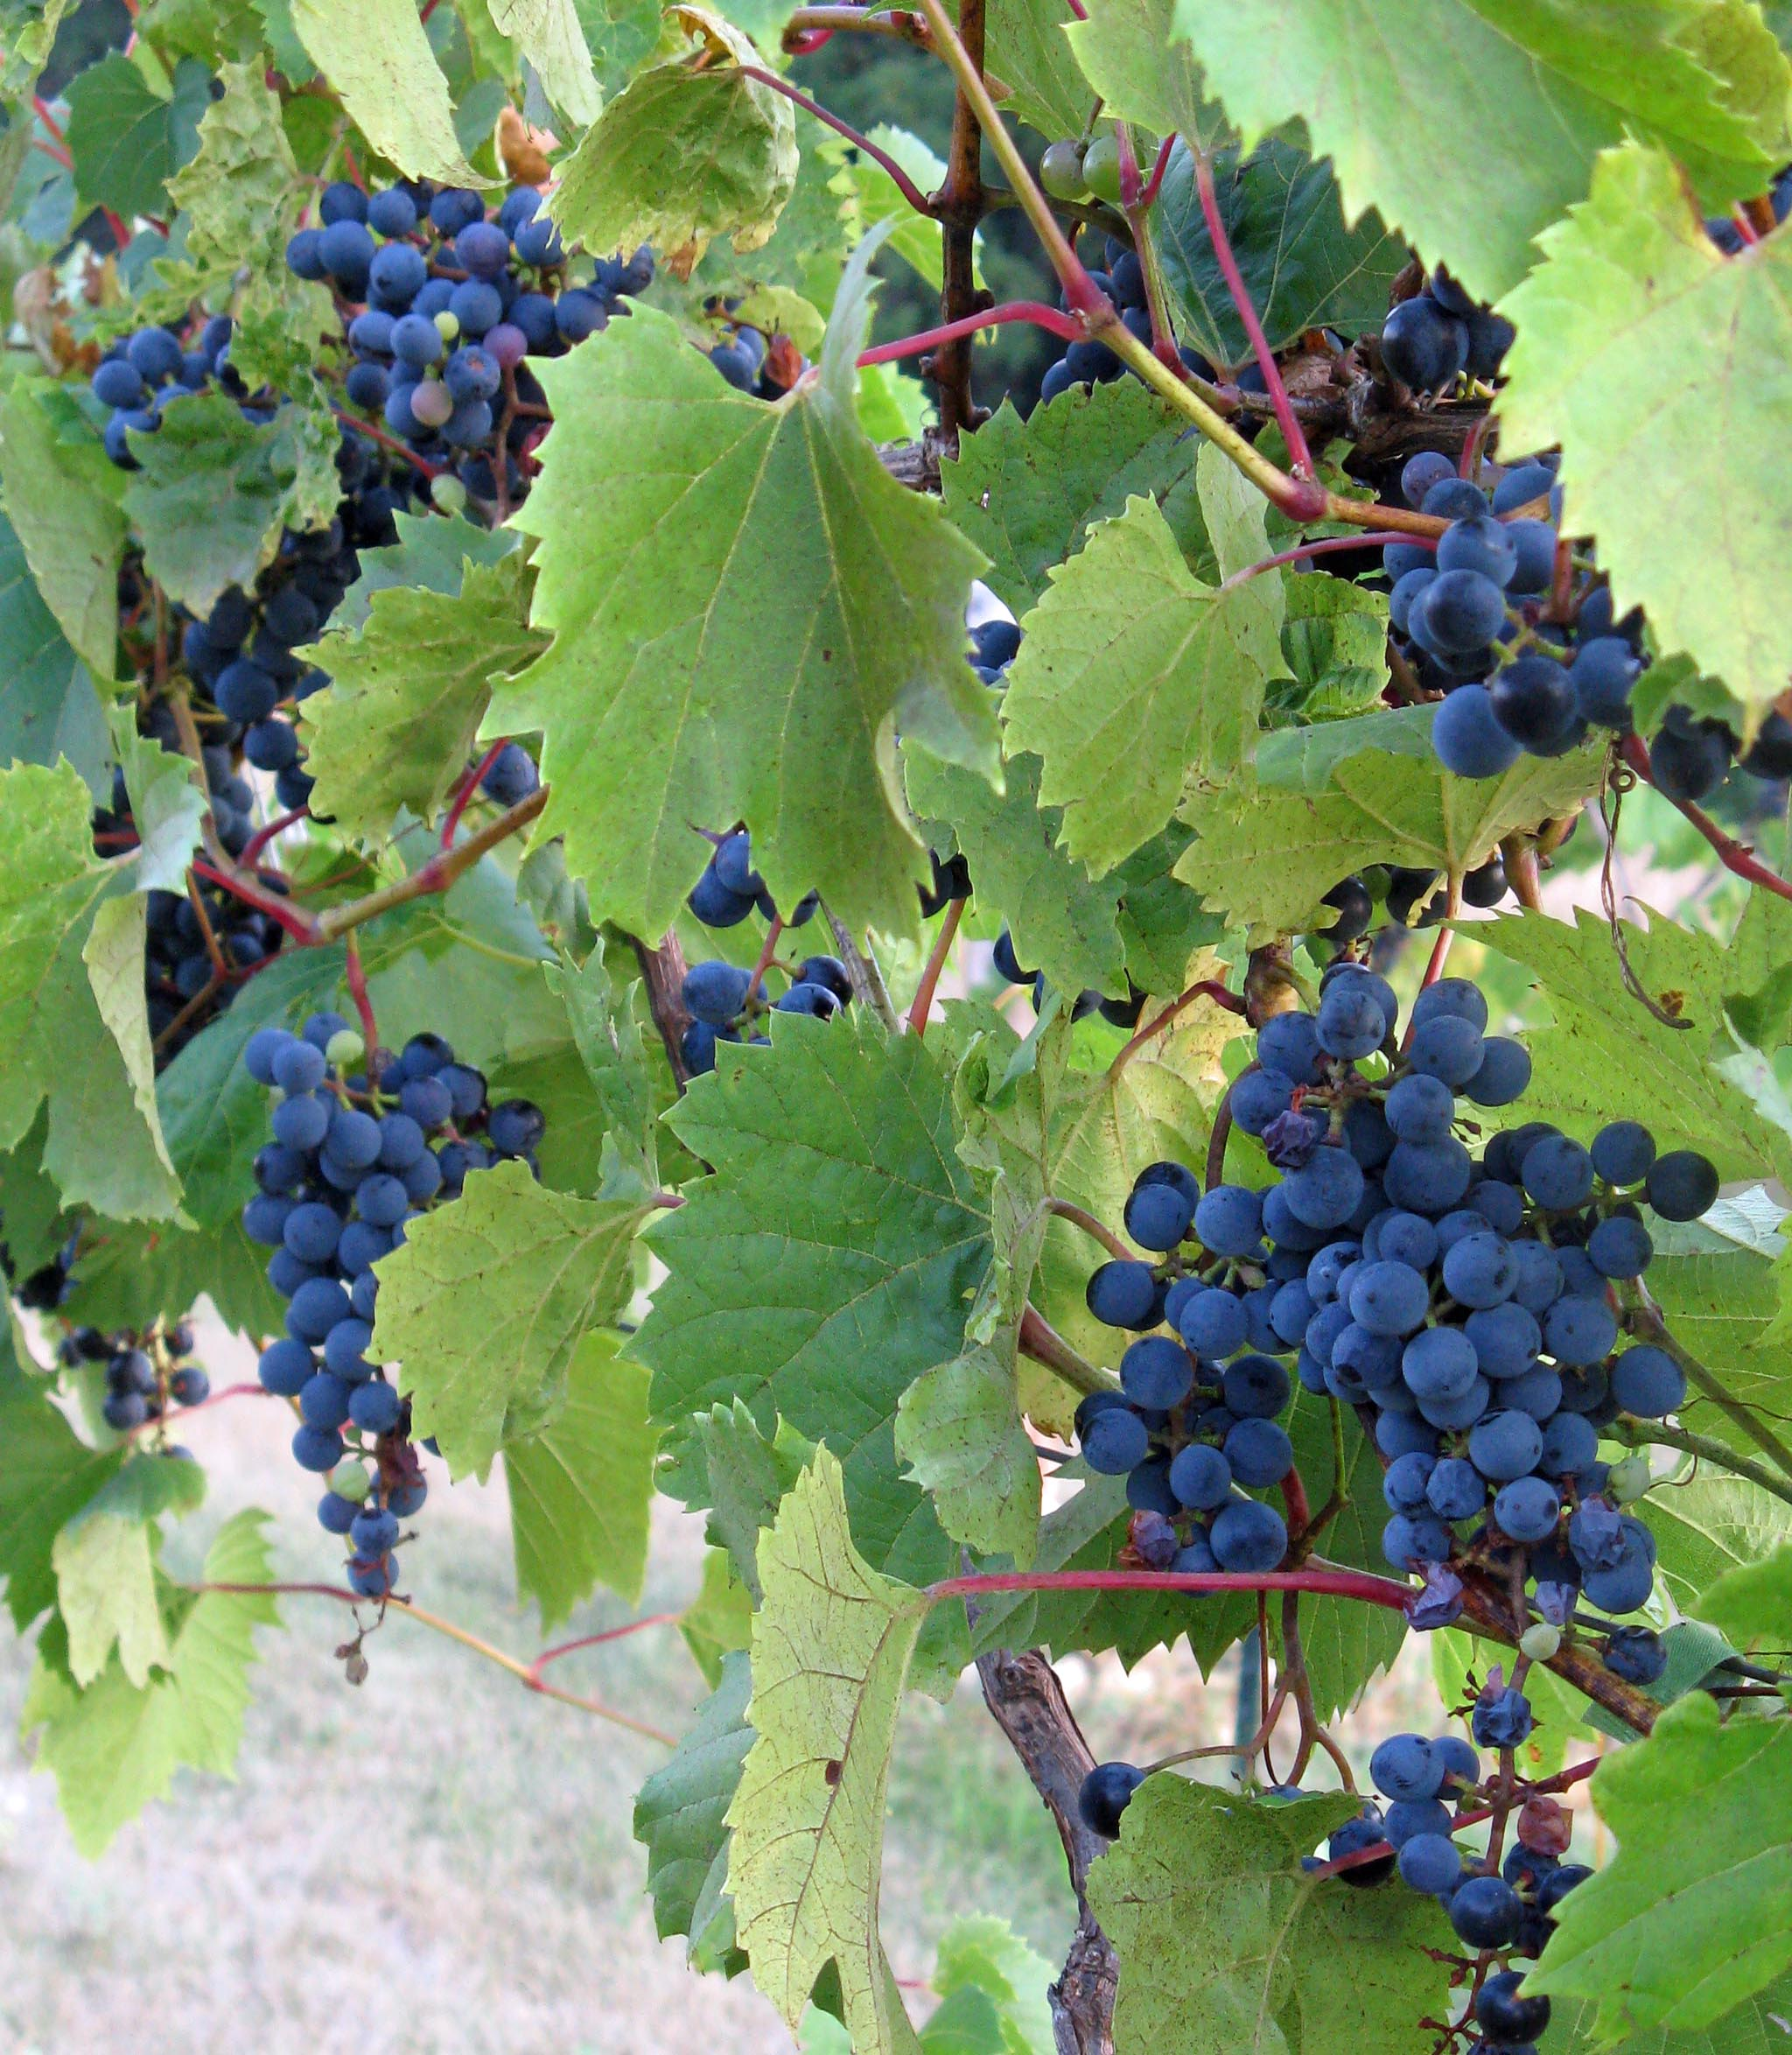 Growing Grapes for Winemaking